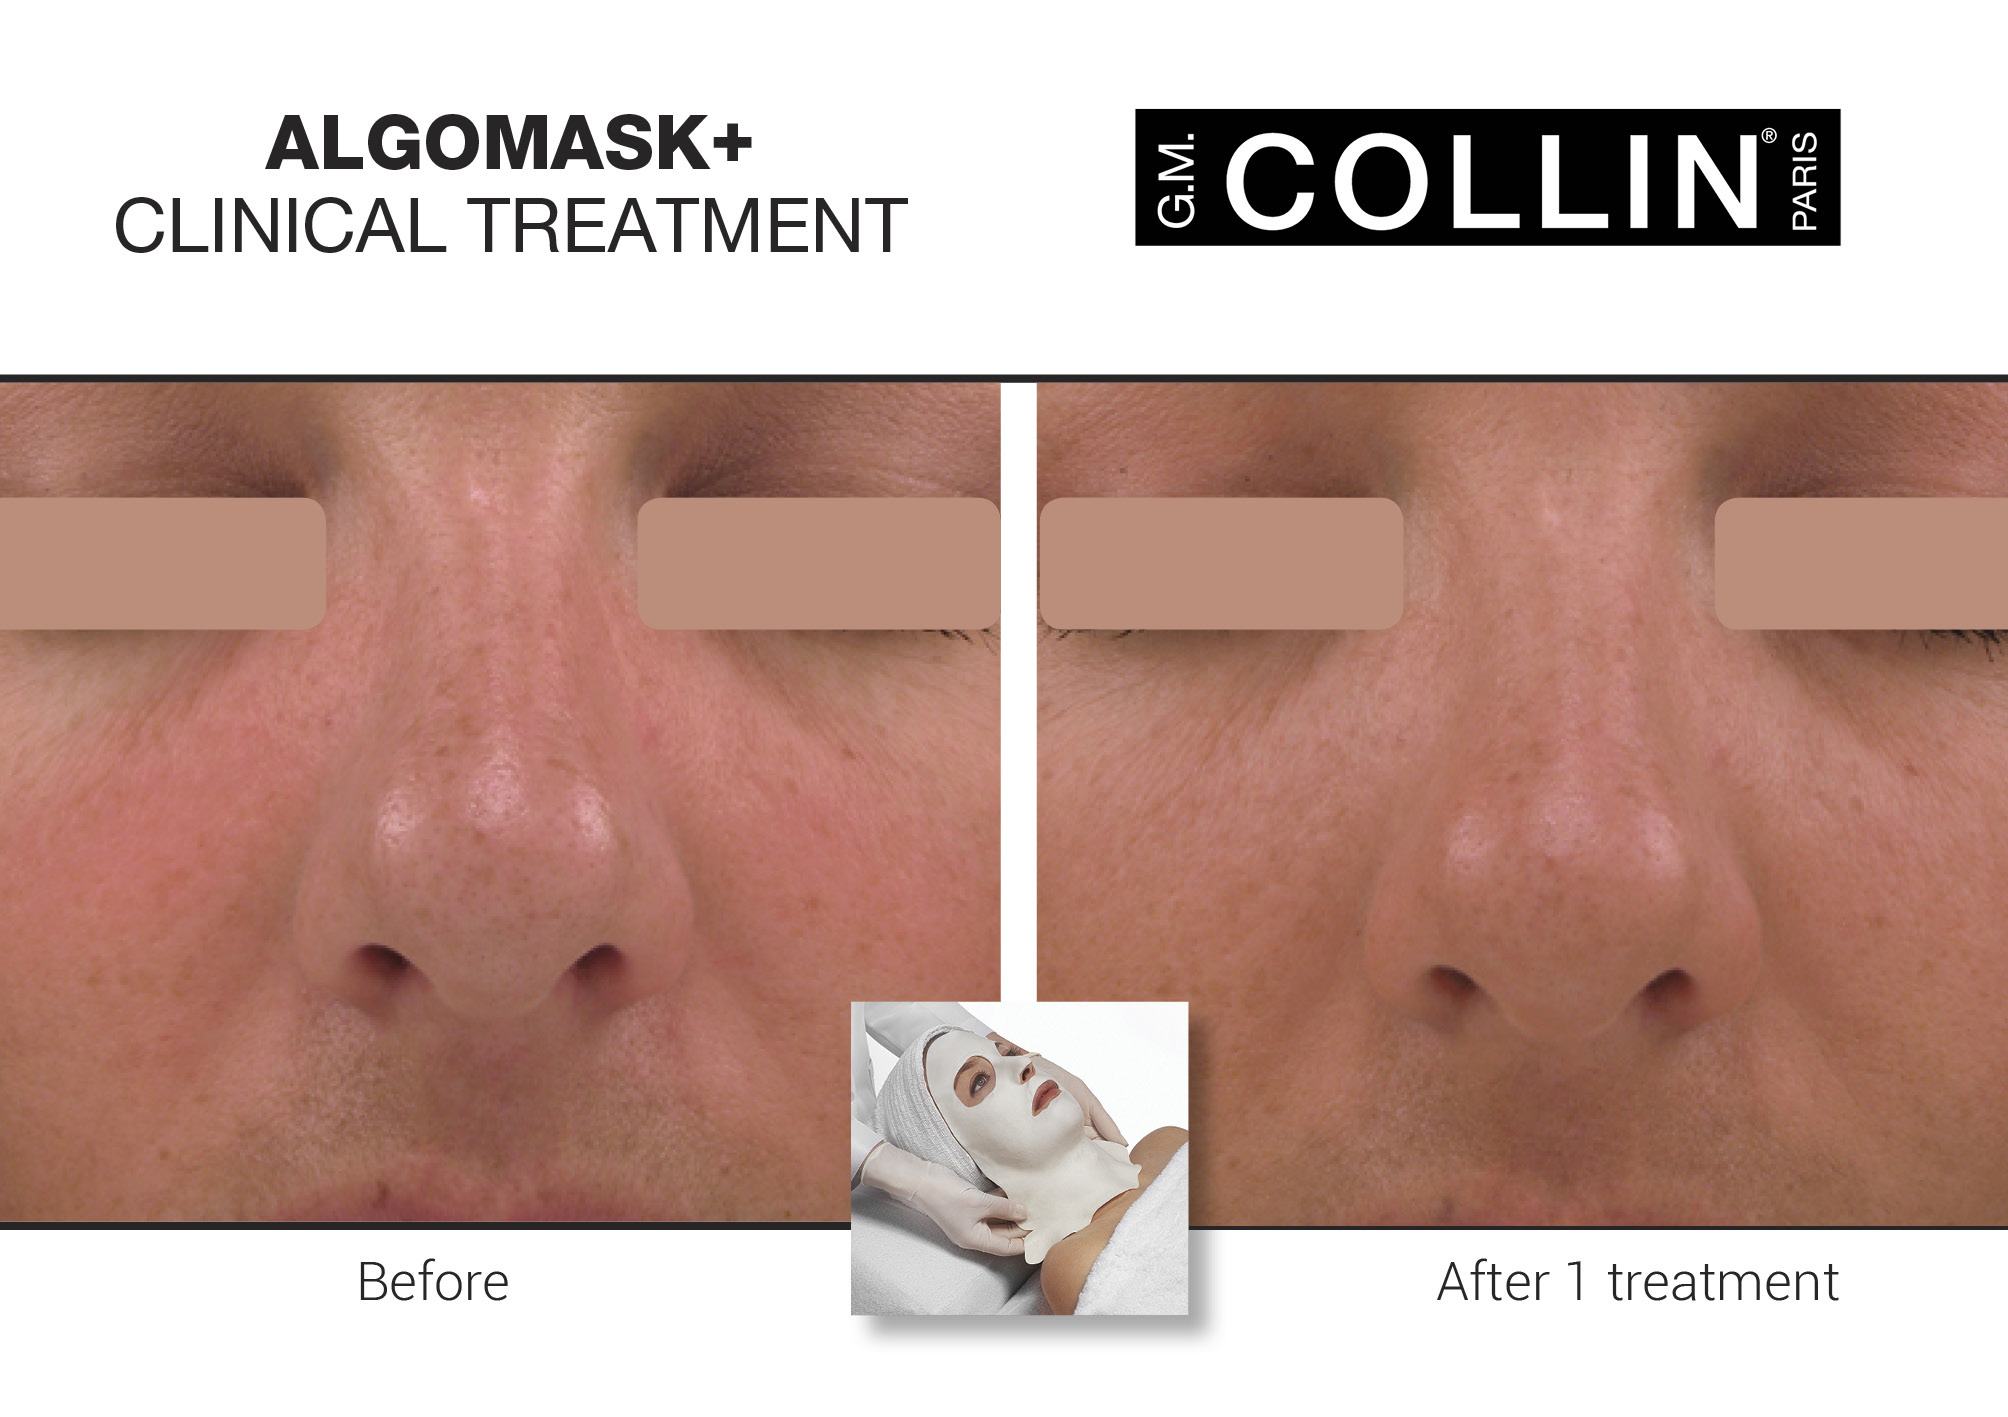 Algomask Cooling Thermo-Corrective Mask Facial Treatment - Exclusive to G.M. collin, this enriched treatment provides immediate and long-lasting hydration. Its thermo-cooling effect on the skin makes it a remarkable decongesting treatment ideal for sensitive, rosacea, couperosed and acne prone skin. It provides instant radiance by hydrating, soothing and brightening the skin while minimizing redness.$88 (60-90 minutes)